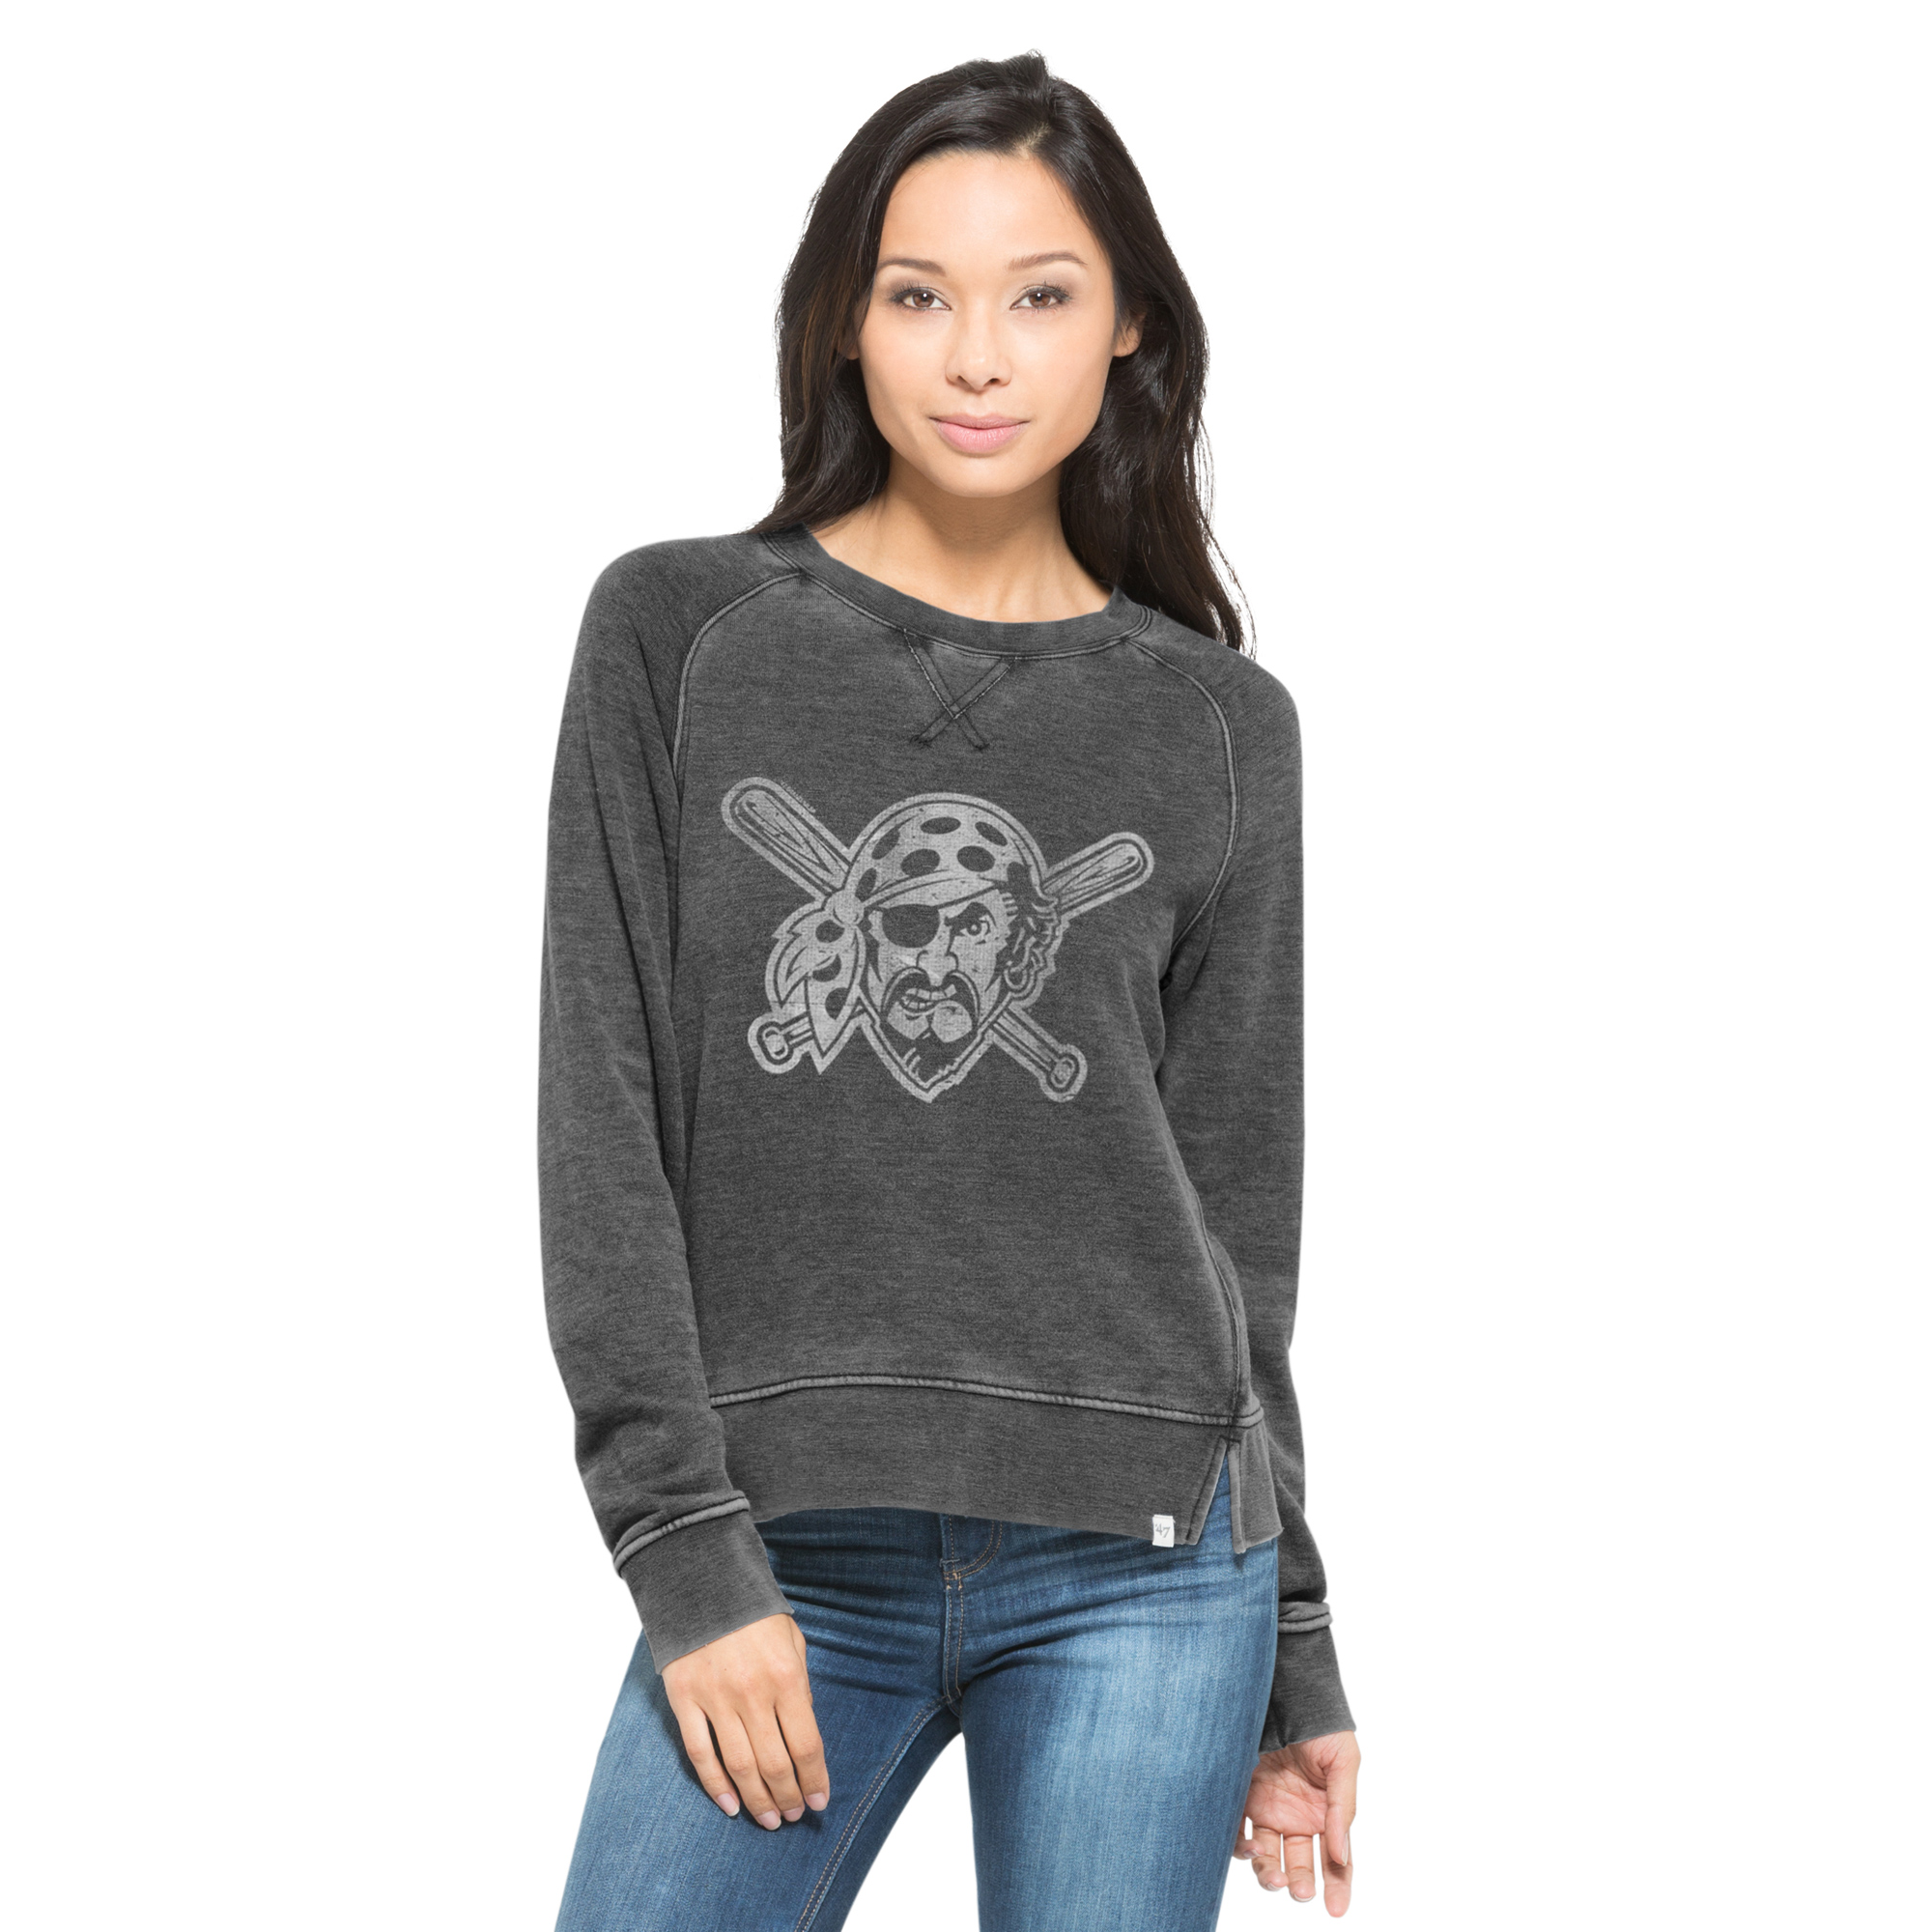 Pittsburgh Pirates '47 Women's Reverb Pullover Sweatshirt - Black